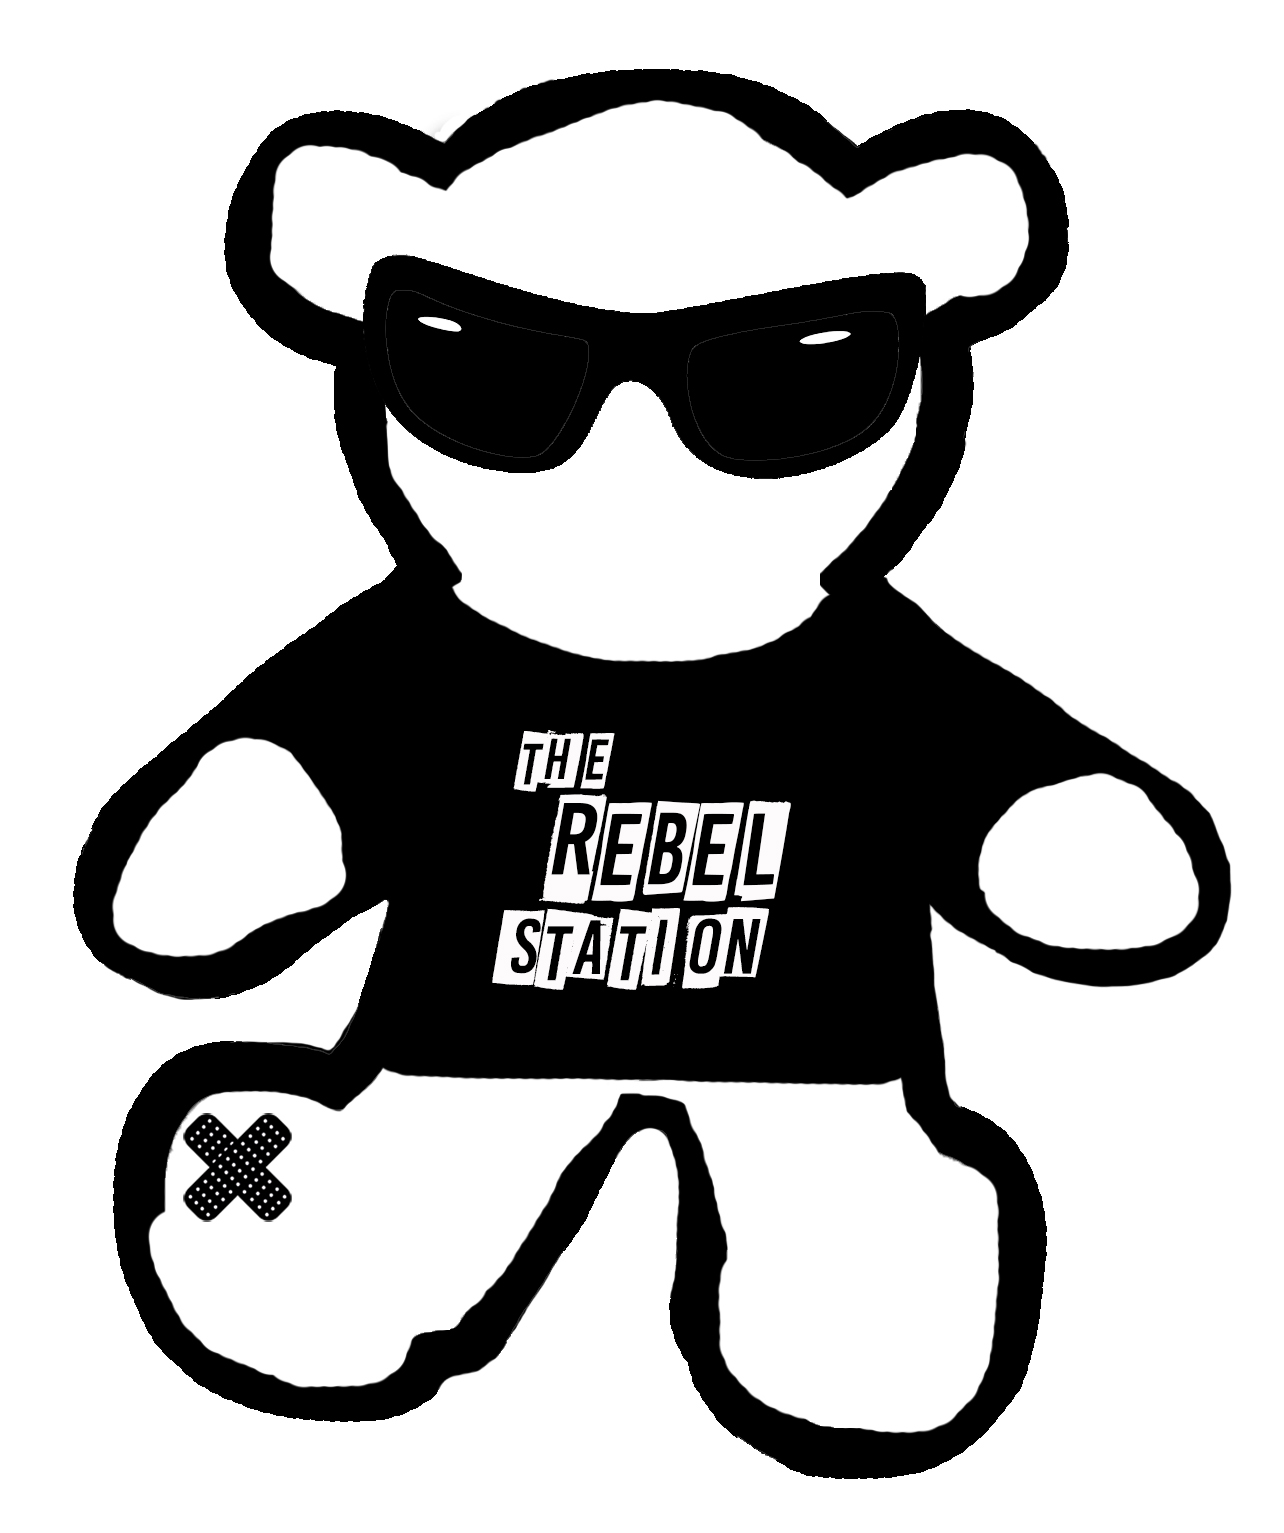 The Rebel Station